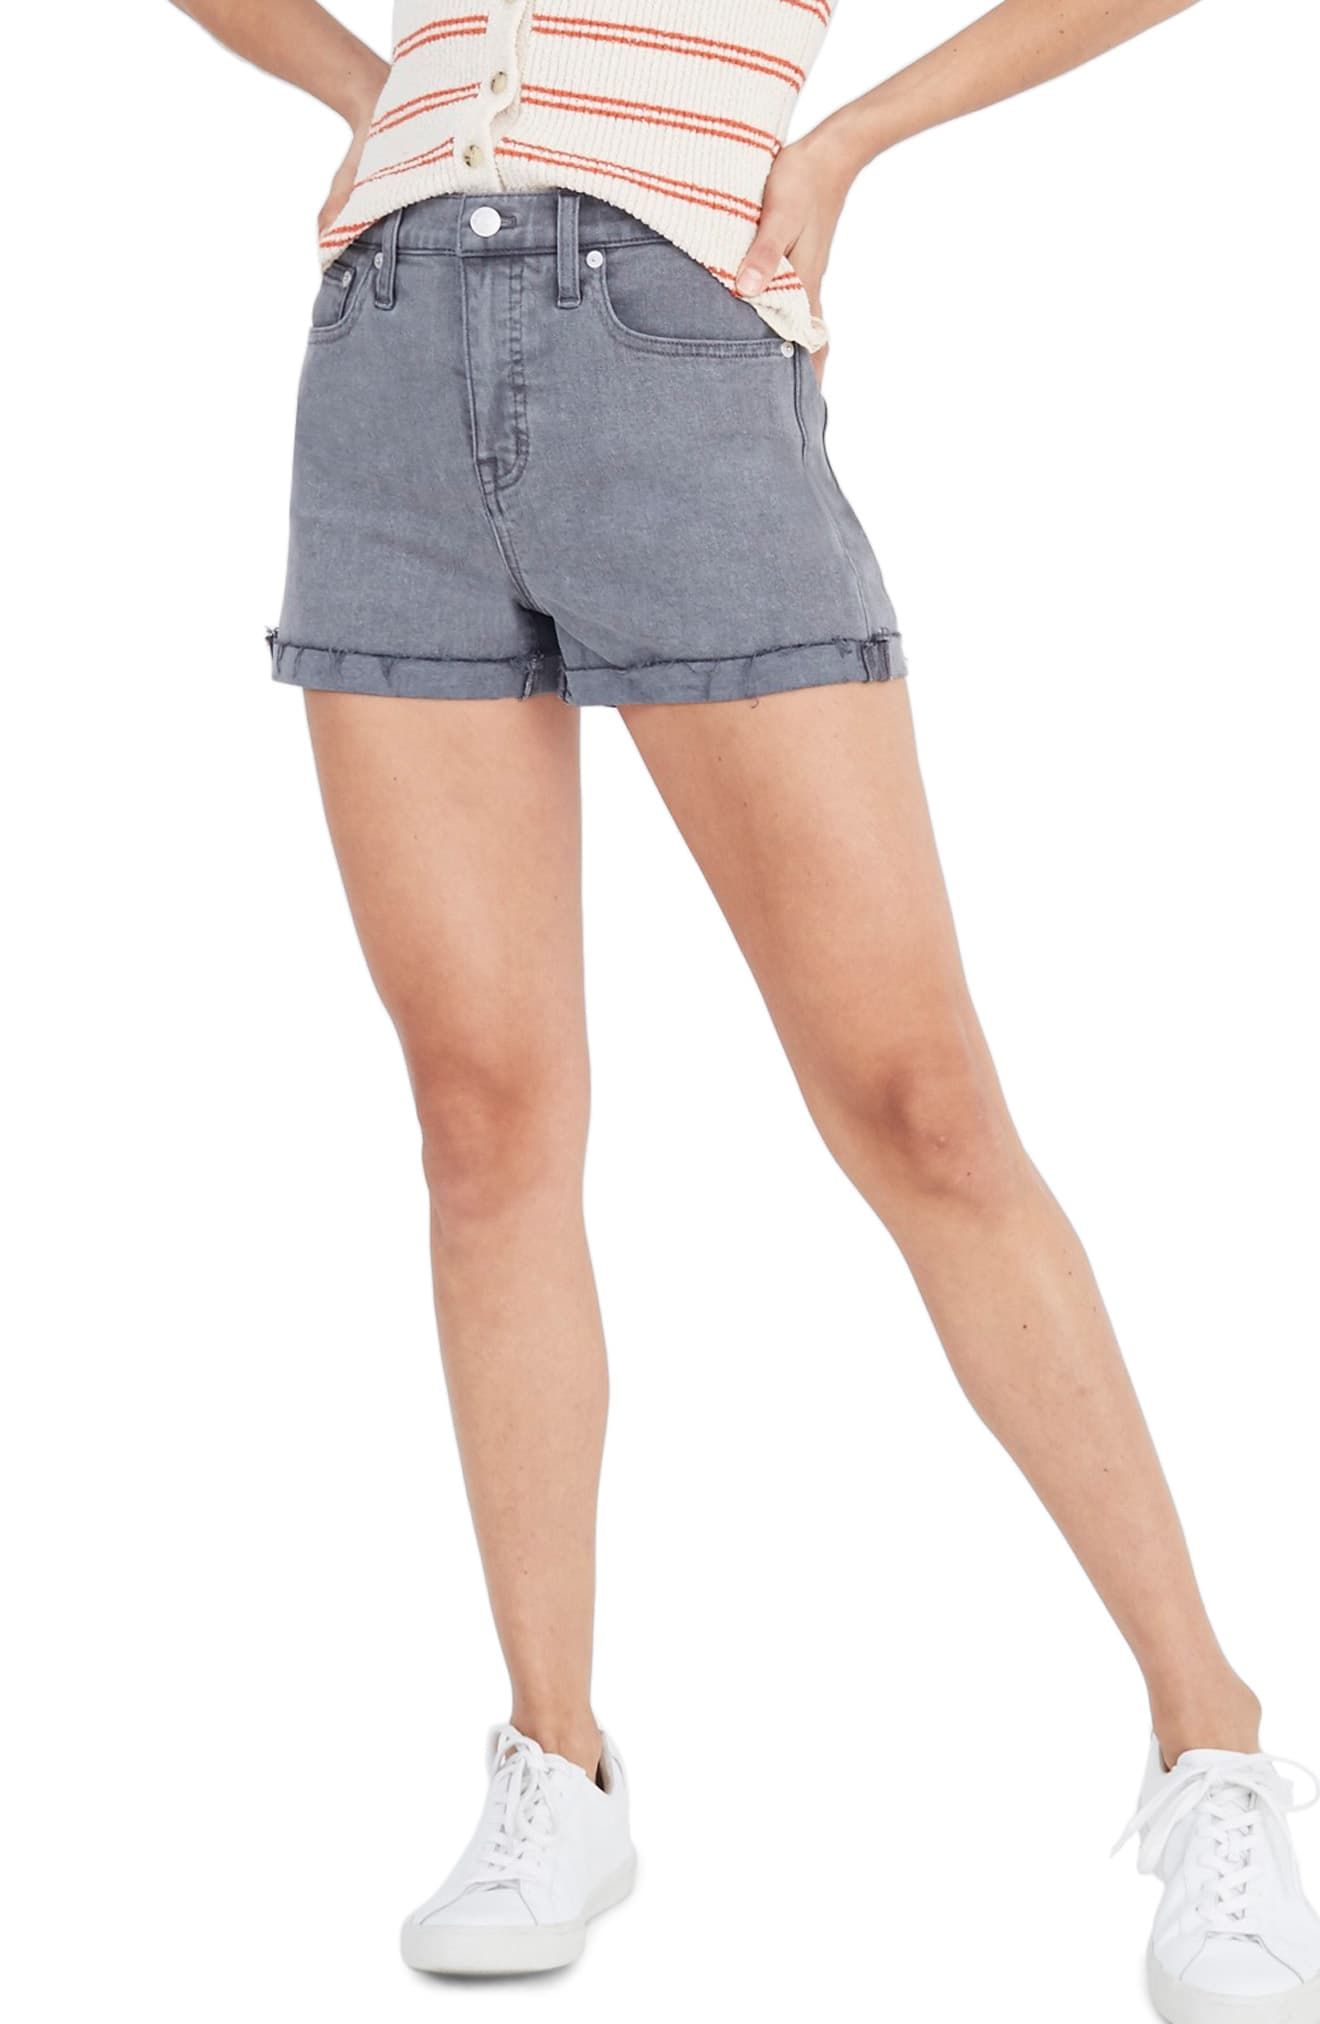 6c2f8e09f Women's Madewell High Waist Cutoff Denim Shorts, Size 23 - Grey in ...